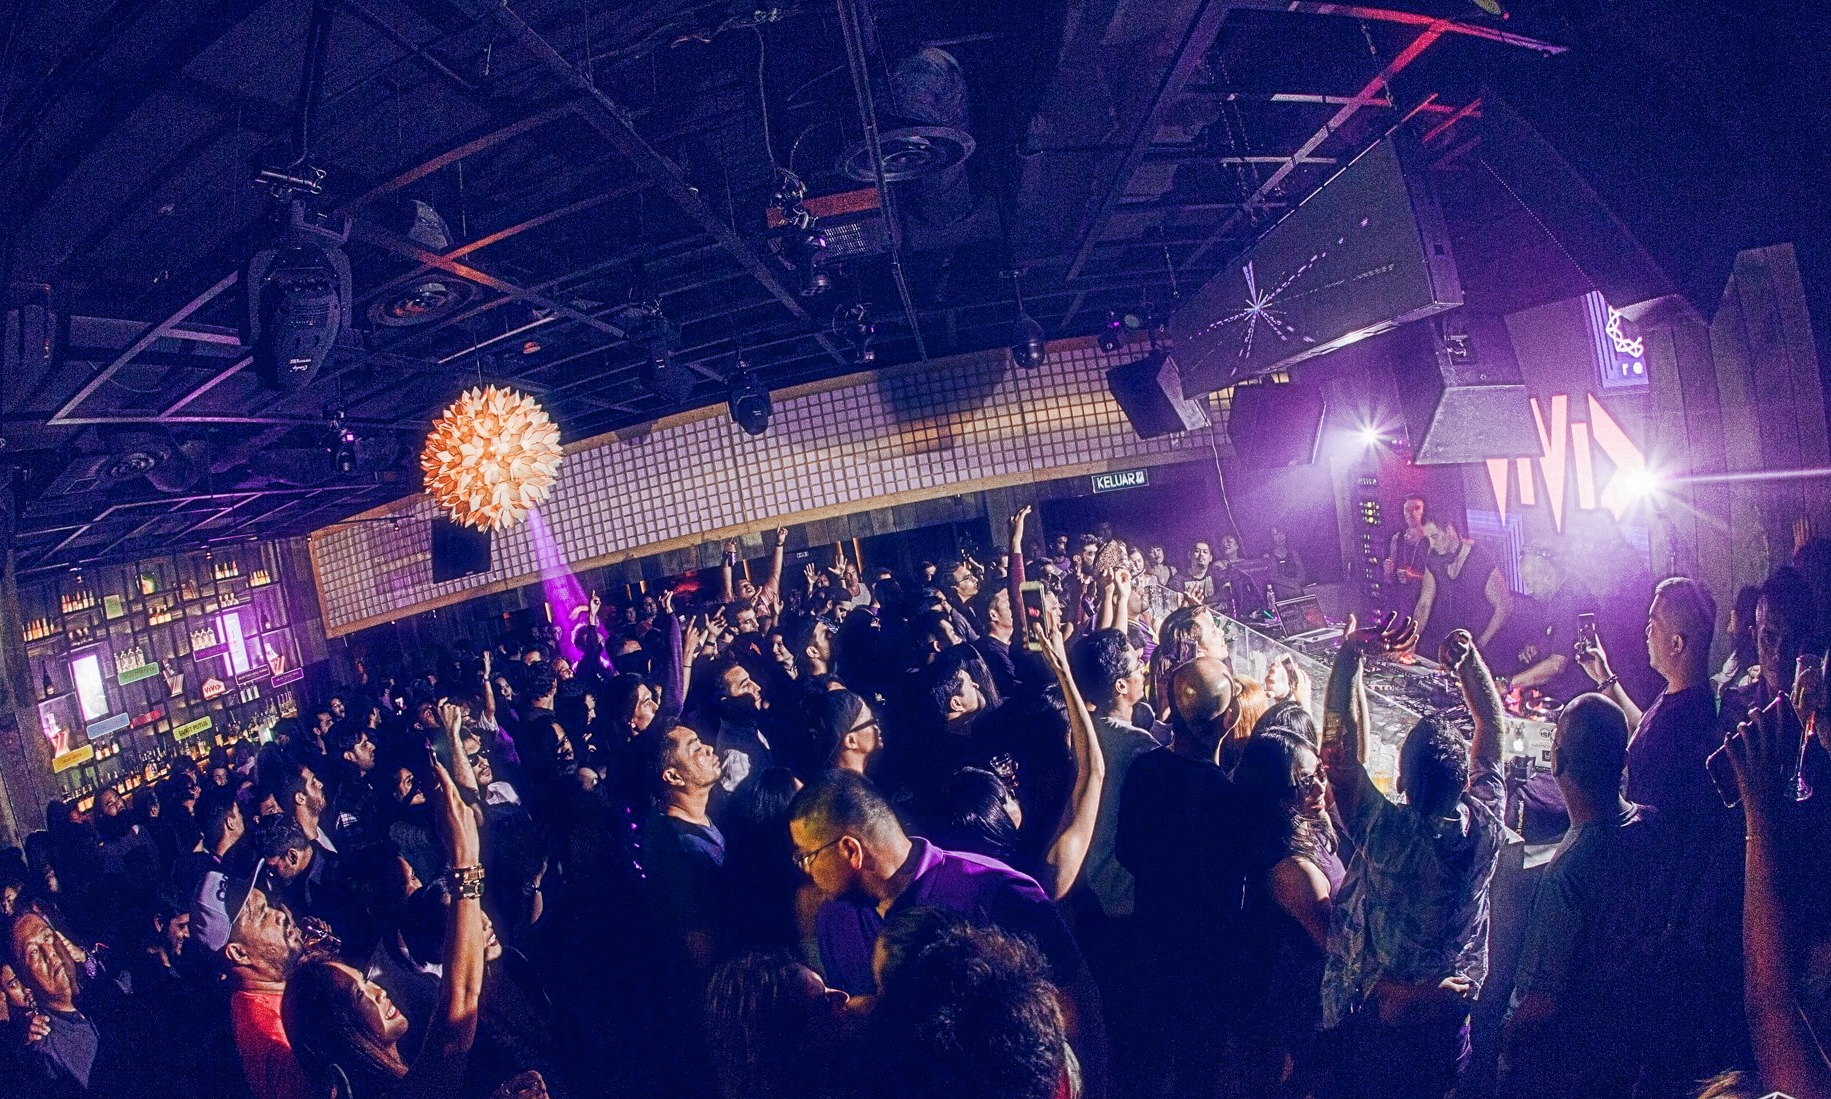 Kuala Lumpur Nightlife : Bar / Club Guide : 28/12/17 : The City List